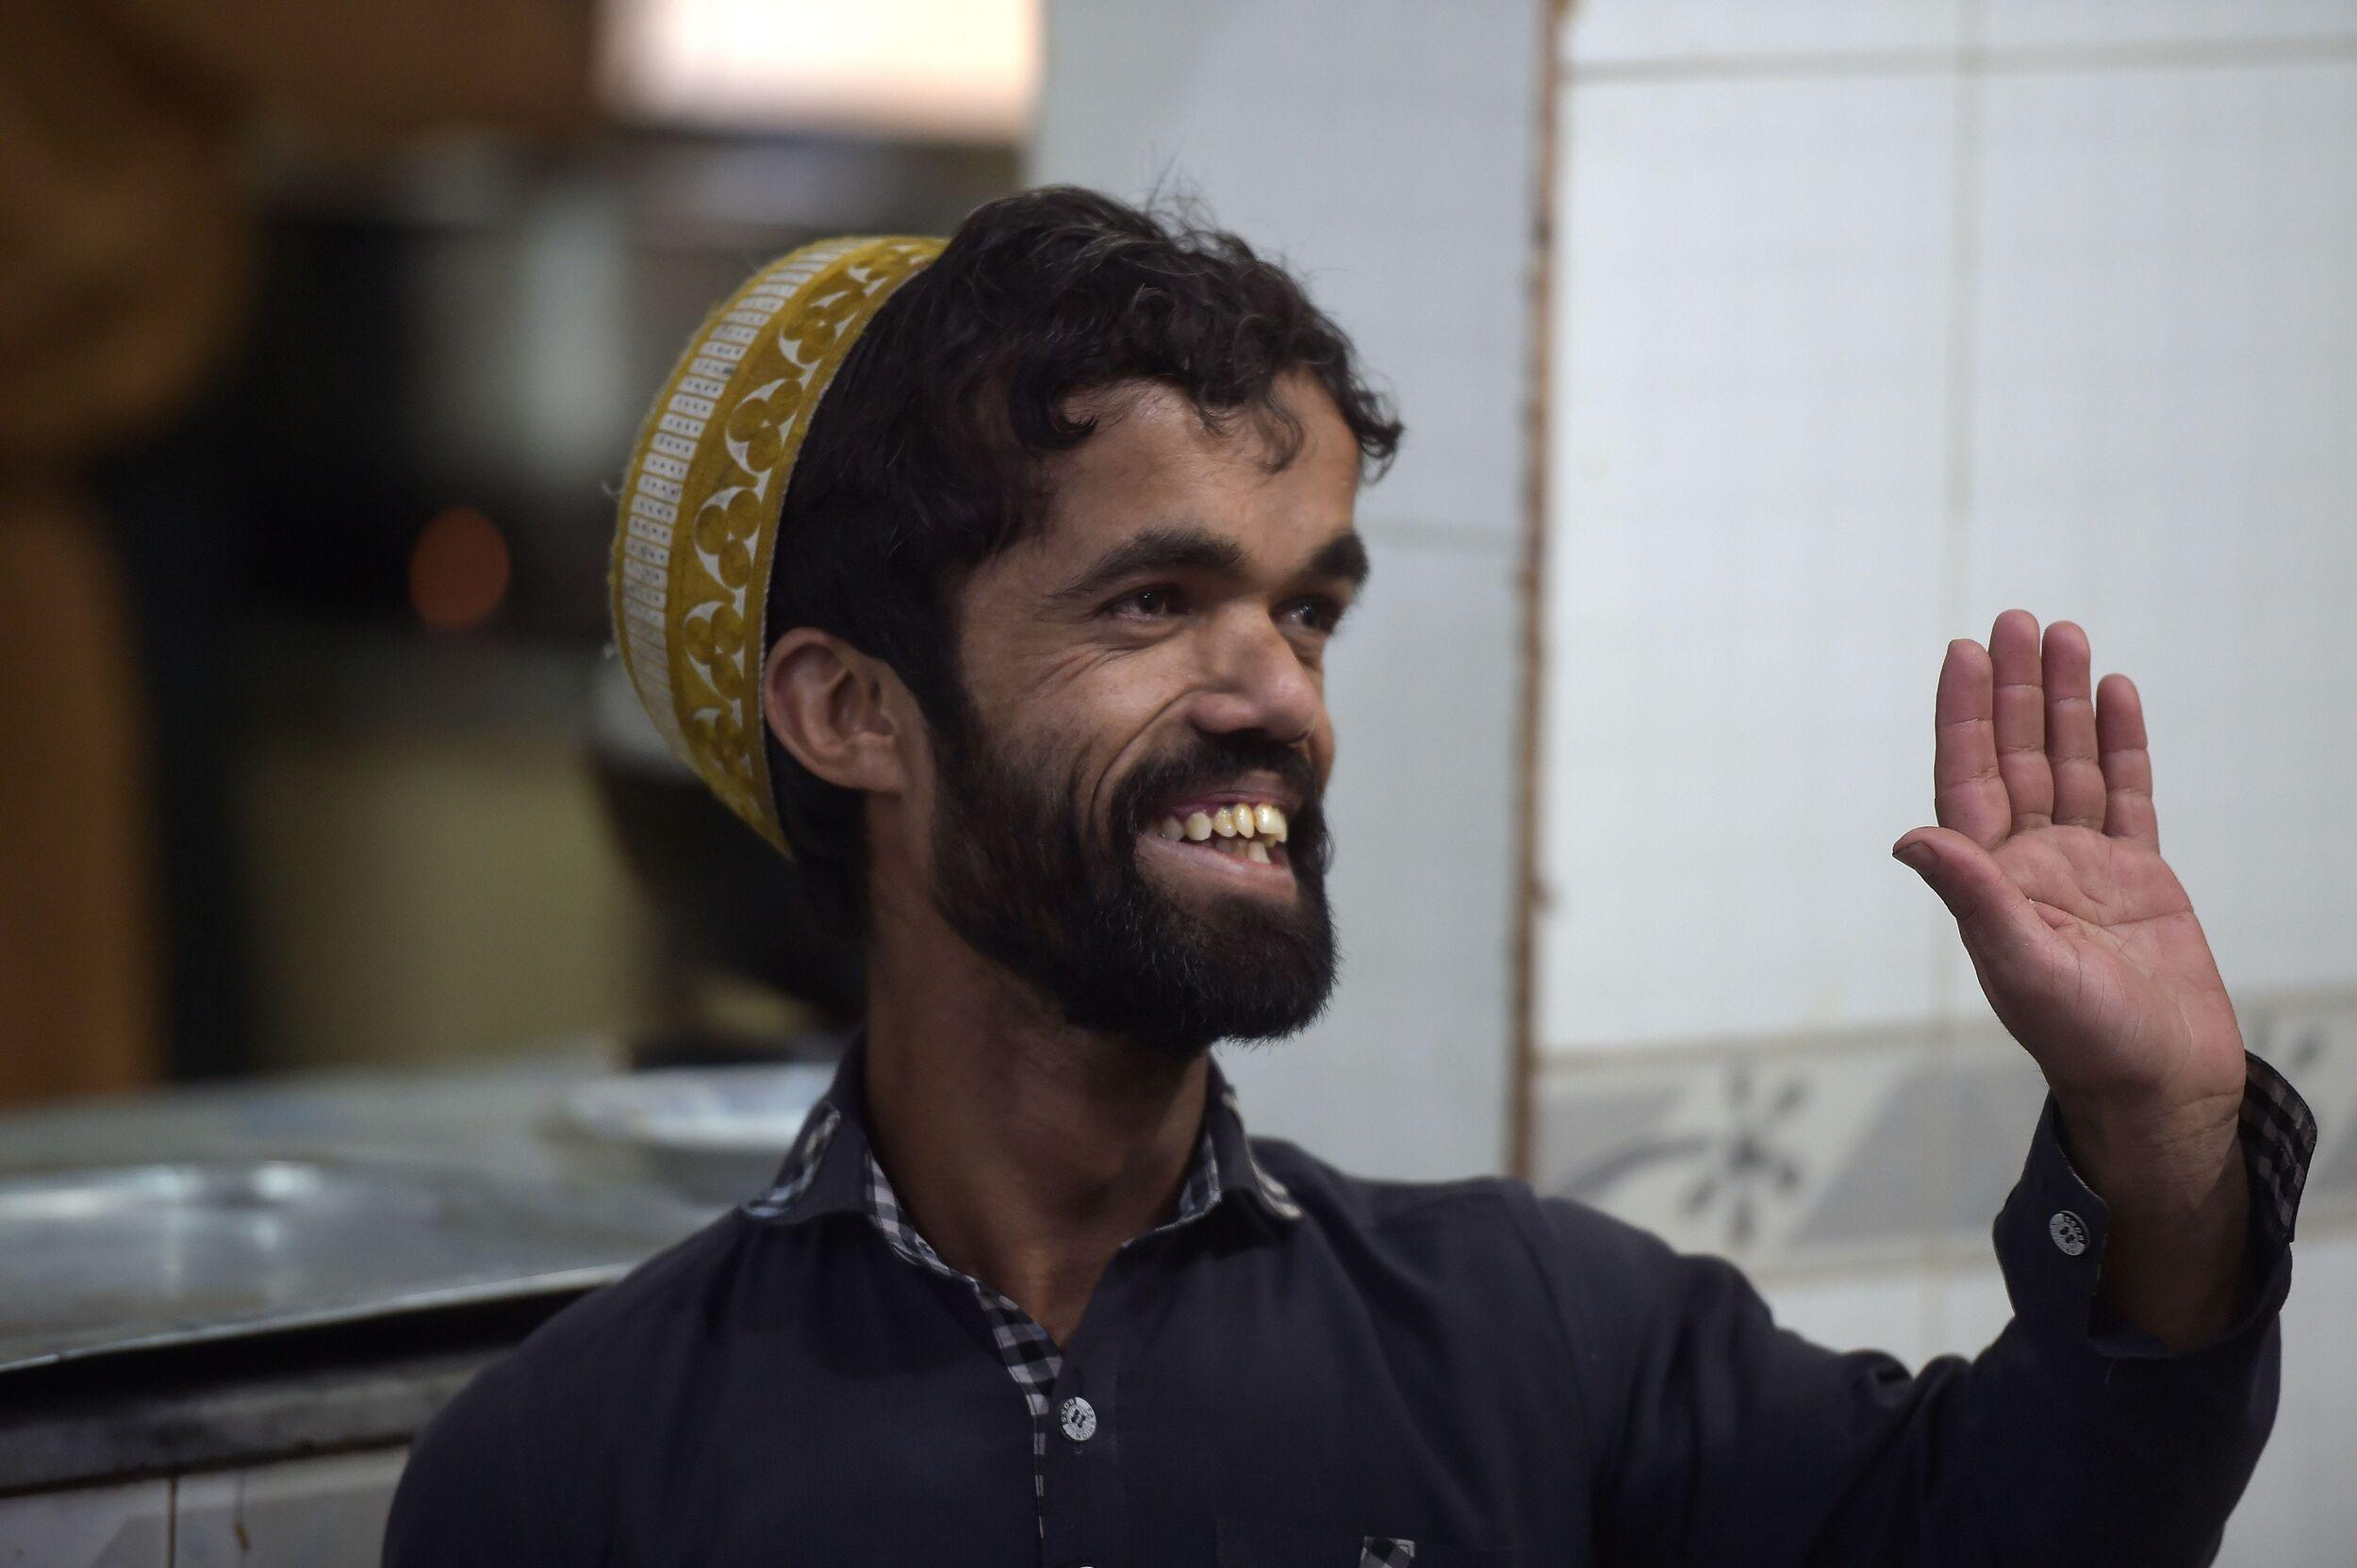 In this picture taken on February 22, 2019, Pakistani waiter Rozi Khan, 25, who resembles US actor Peter Dinklage, waving to customers at Dilbar Hotel in Rawalpindi. - Rozi Khan had never heard of the Game of Thrones -- or its hugely popular character Tyrion Lannister -- until his striking resemblance to the dwarf anti-hero got heads turning at home. (Photo by AAMIR QURESHI / AFP) / To go with PAKISTAN-LIFESTYLE-TELEVISION-ENTERTAINMENT        (Photo credit should read AAMIR QURESHI/AFP/Getty Images)